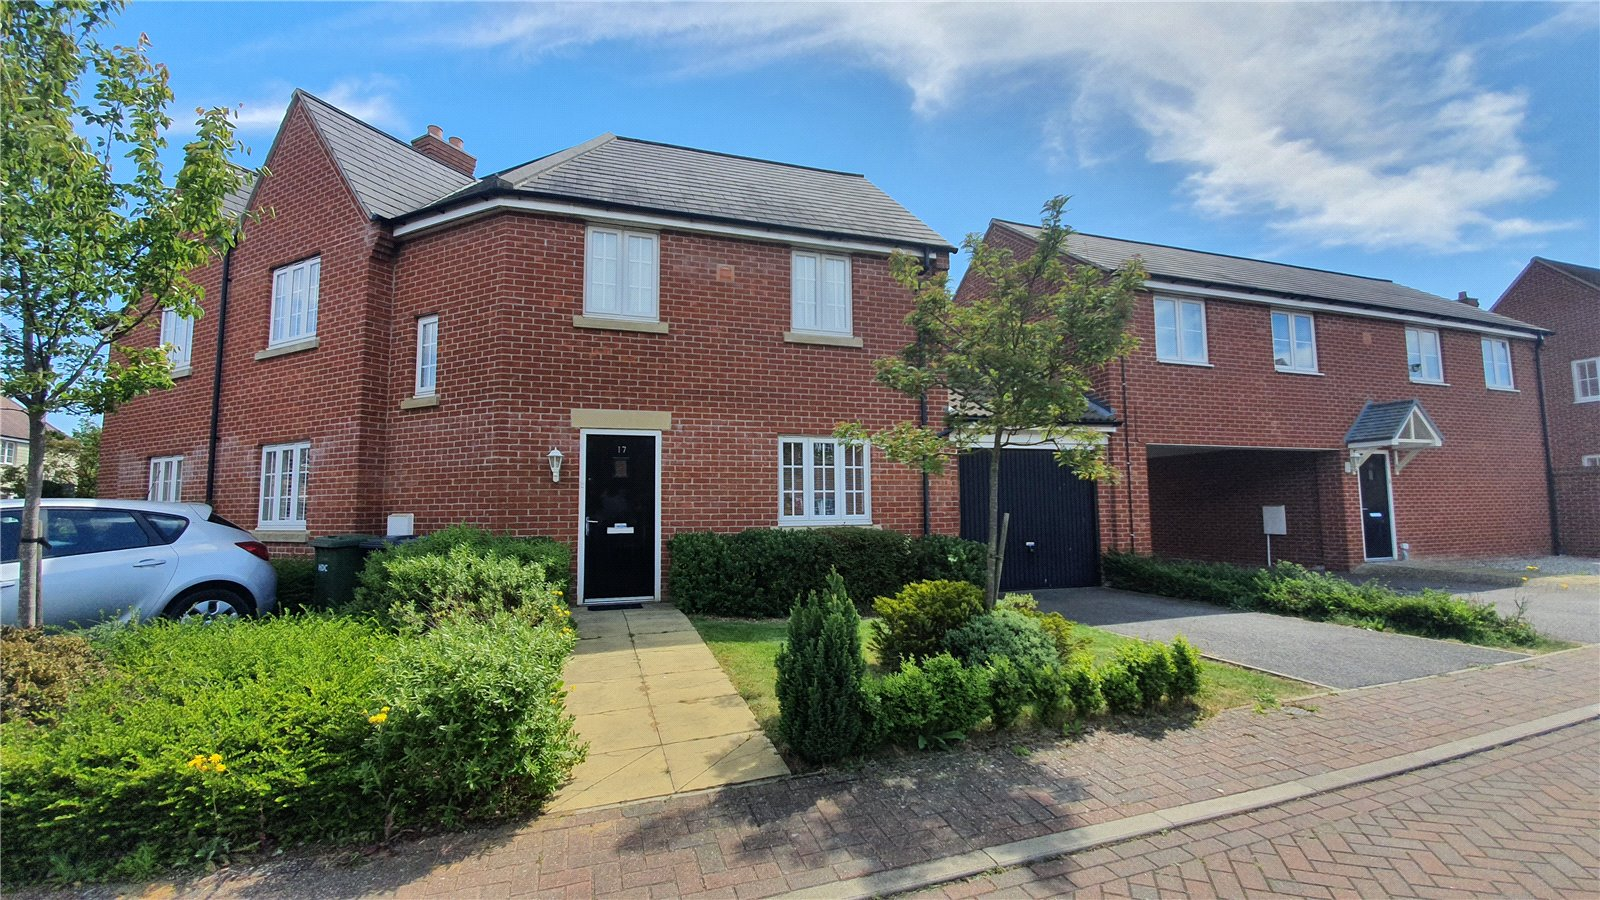 3 bed house for sale in St. Neots, PE19 6BA, PE19